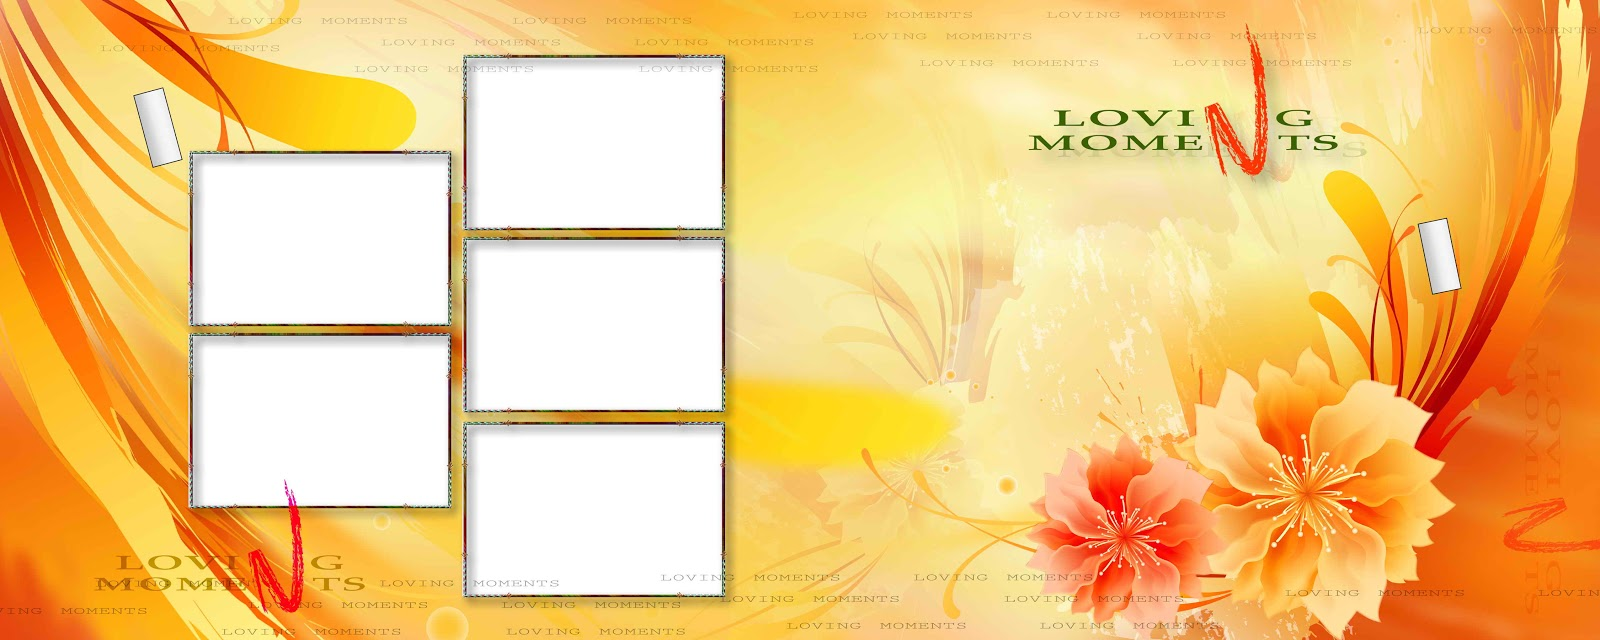 psd wedding backgrounds for photoshop free download psd